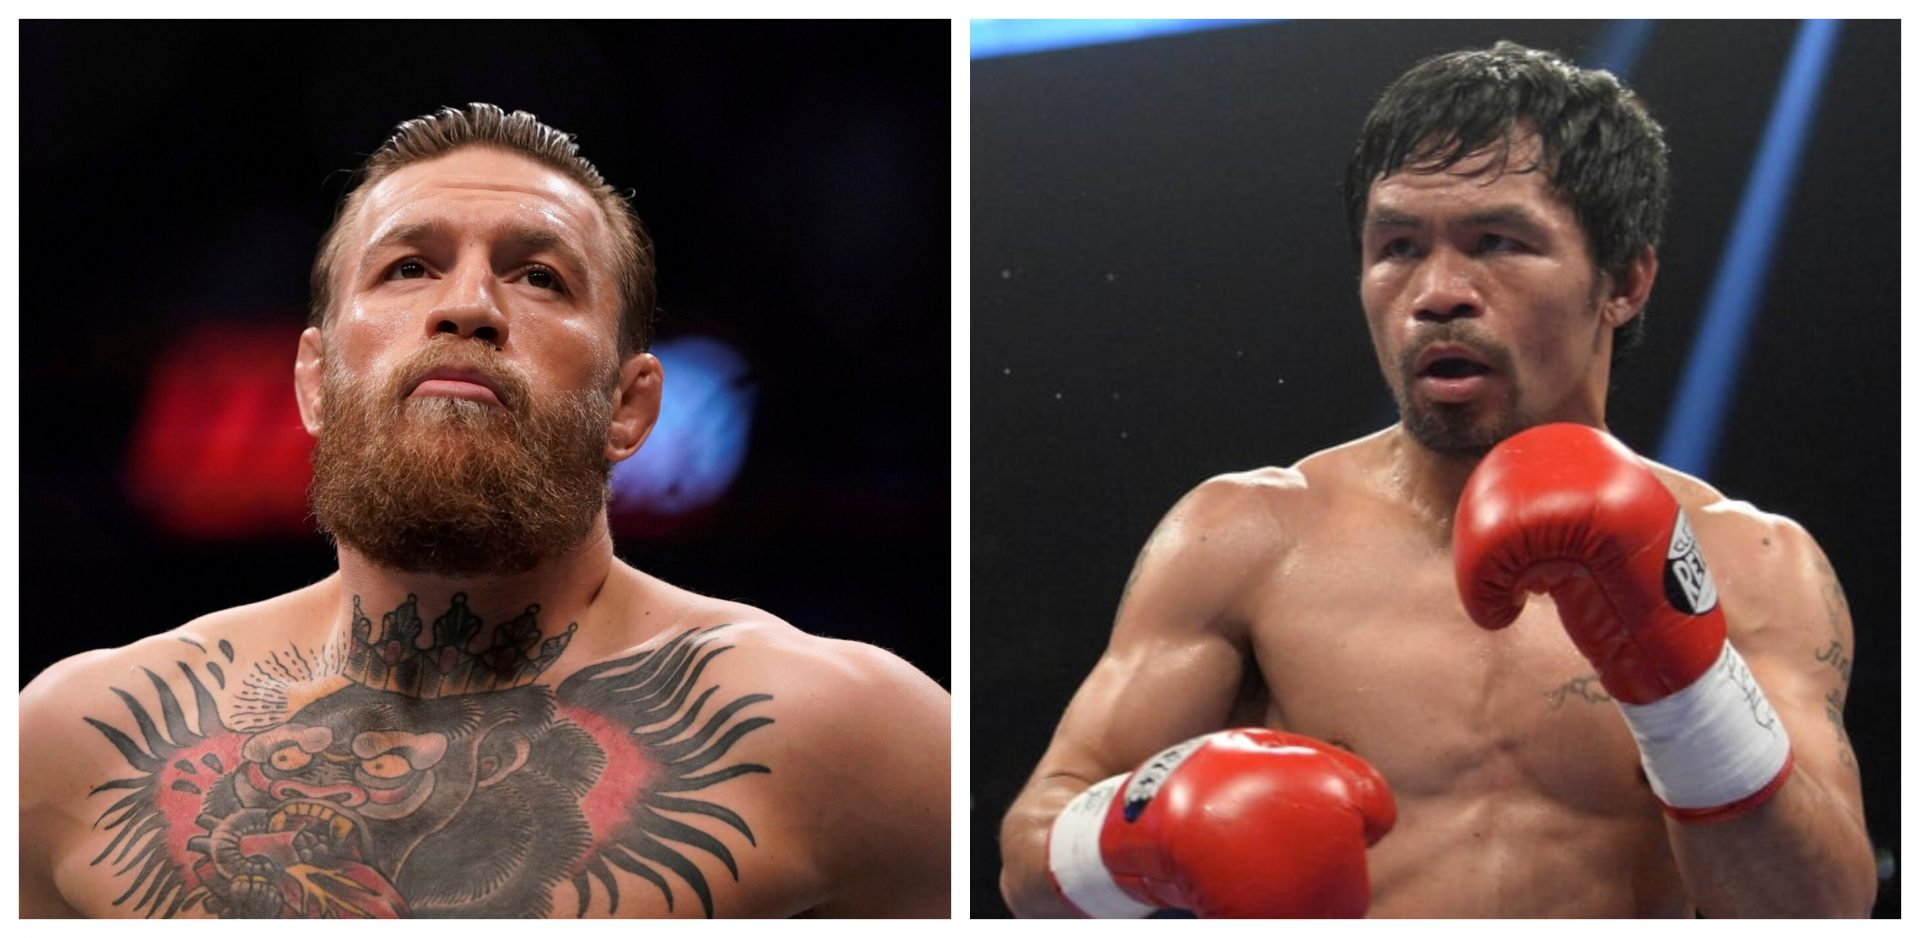 """Conor McGregor confirms facing Manny Pacquiao in 2021, says fight """"almost a certainty"""" - Conor McGregor"""